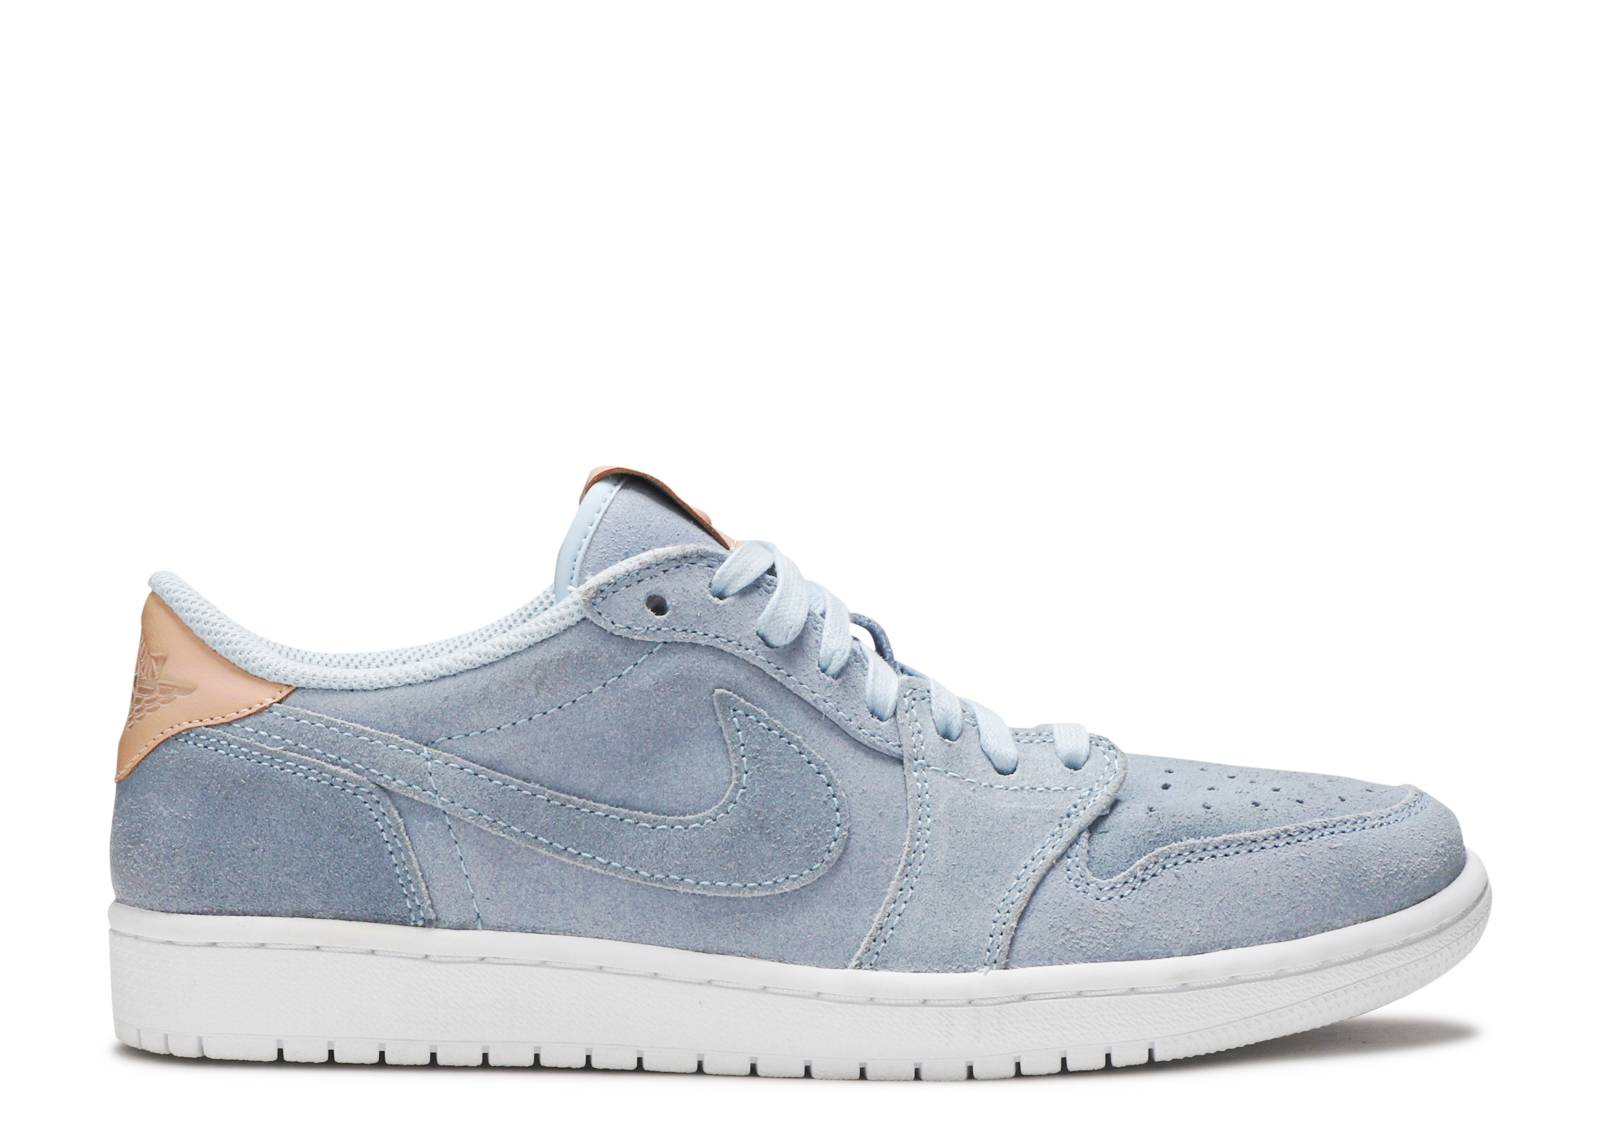 nike air jordan 1 retro low